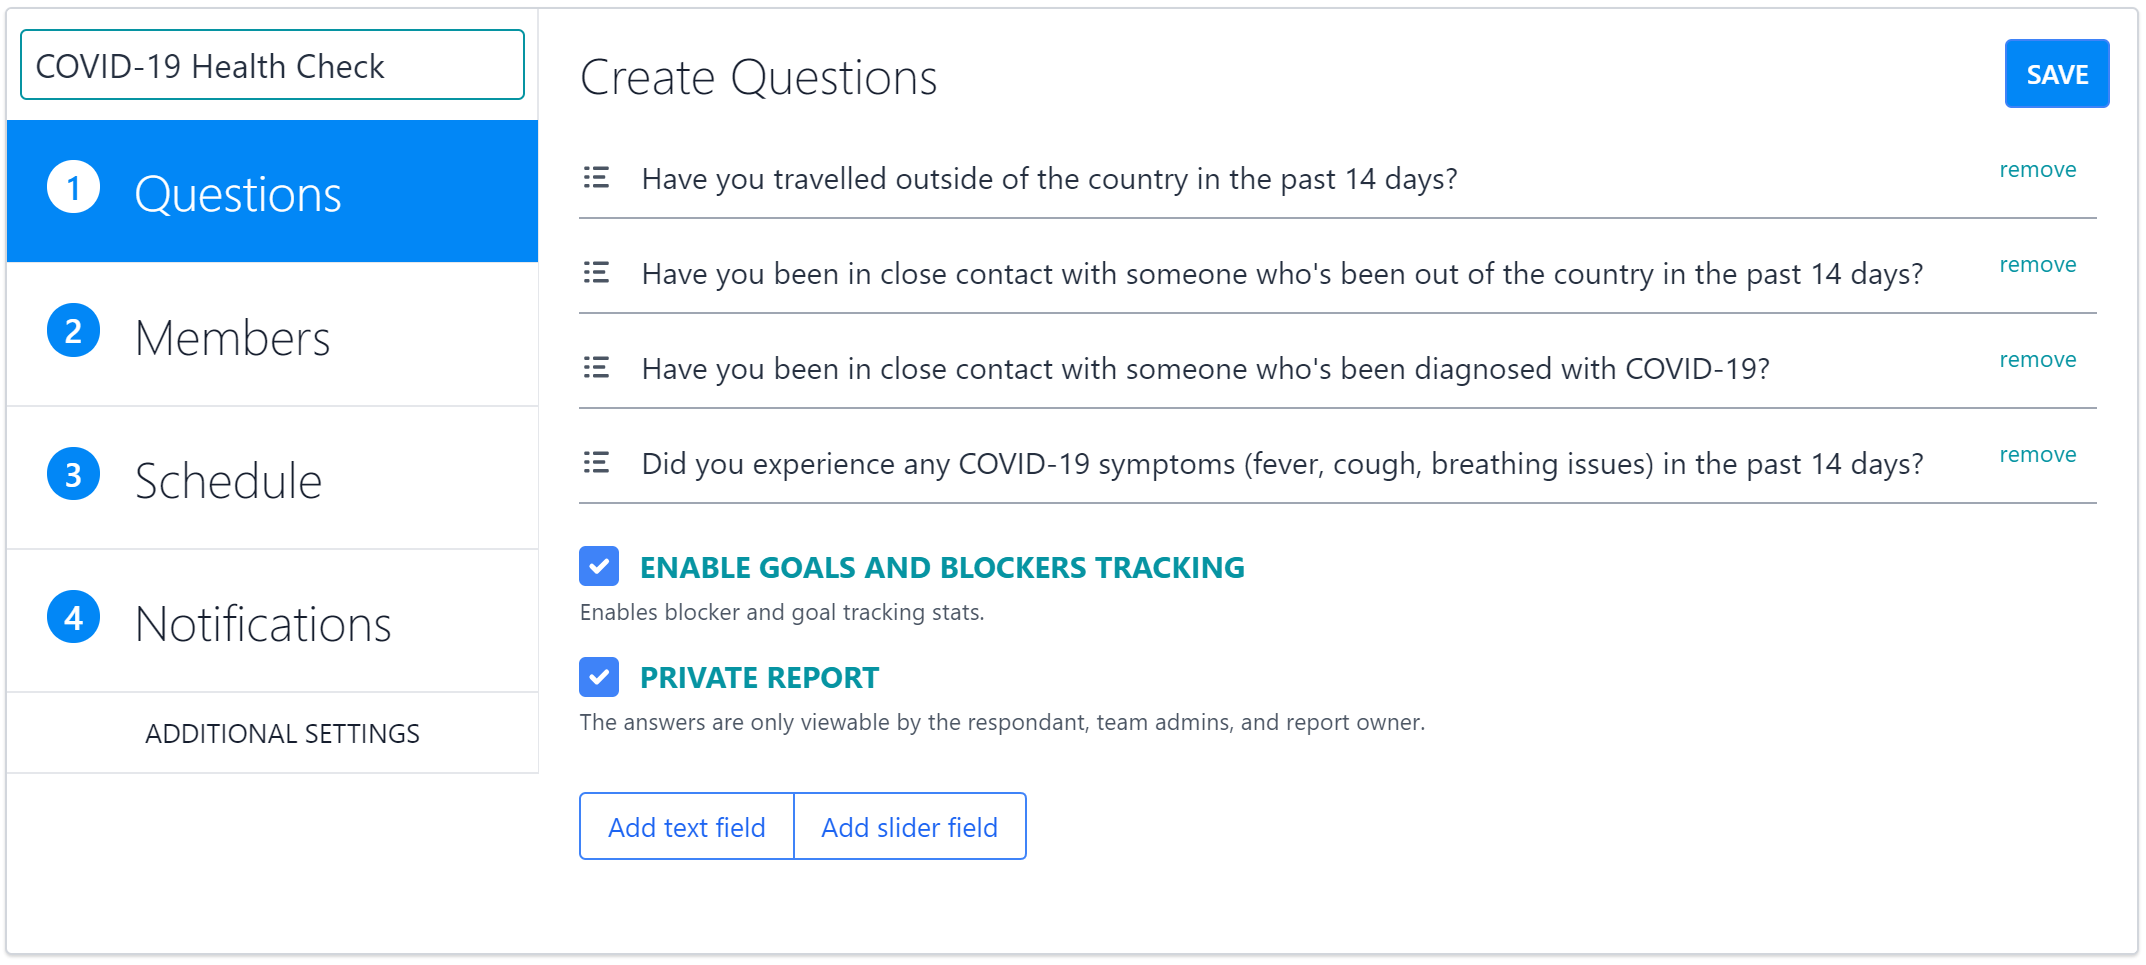 How to Use Private Questions for COVID-19 Health Checks - Mental & Physical Health